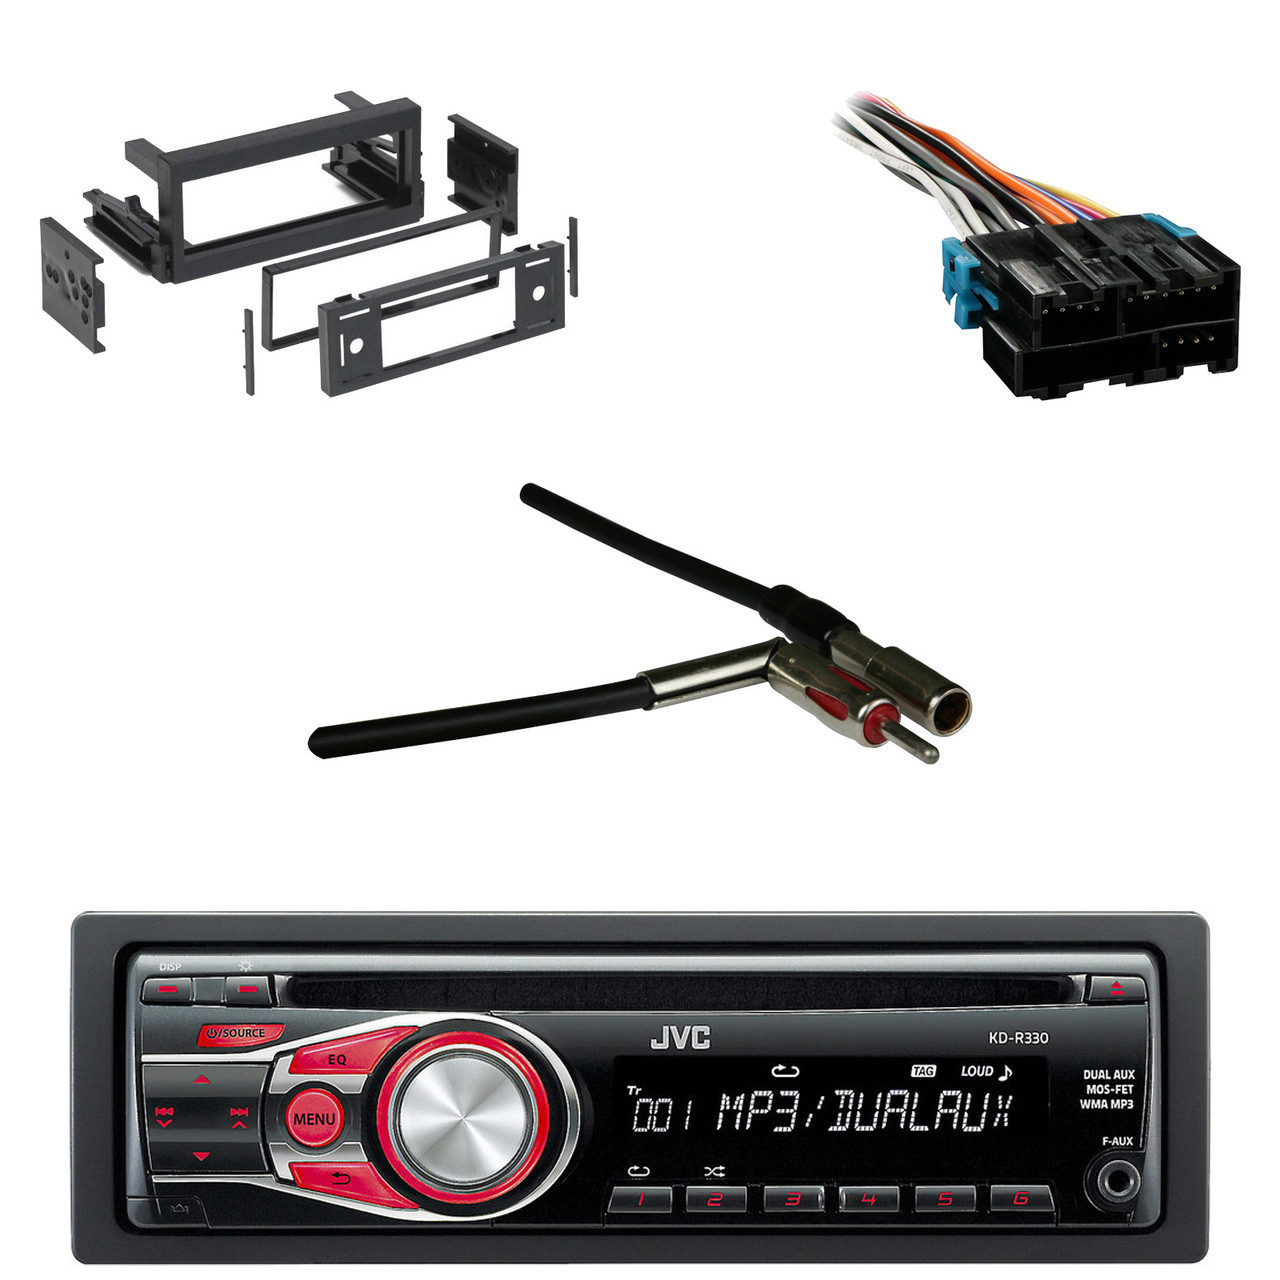 medium resolution of jvc kdr330 cd aux car radio antenn adapter gm wire harness gm rh roadentertainment com wiring